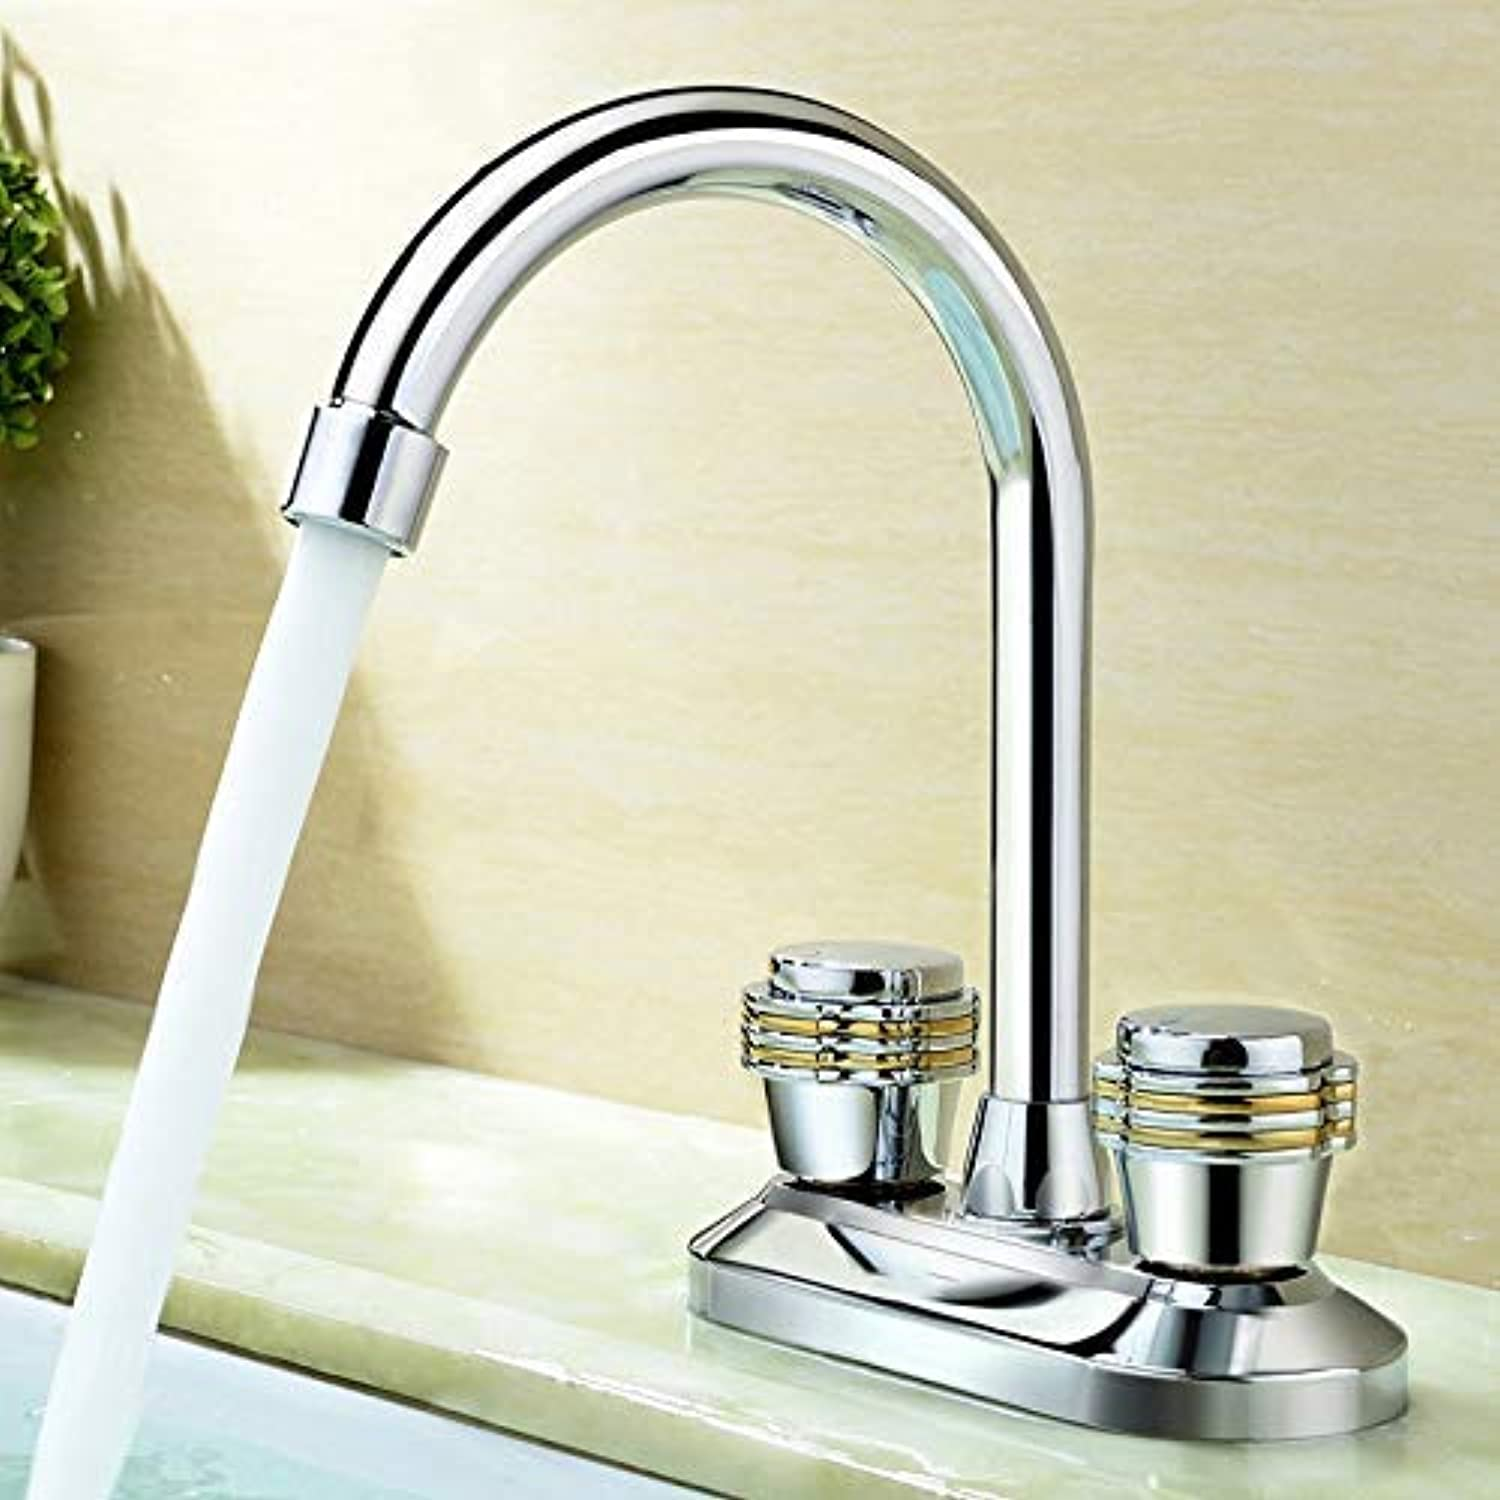 Oudan Basin Mixer Tap Bathroom Sink Faucet Double Double Handle hot and cold basin tap,T (color   Y)